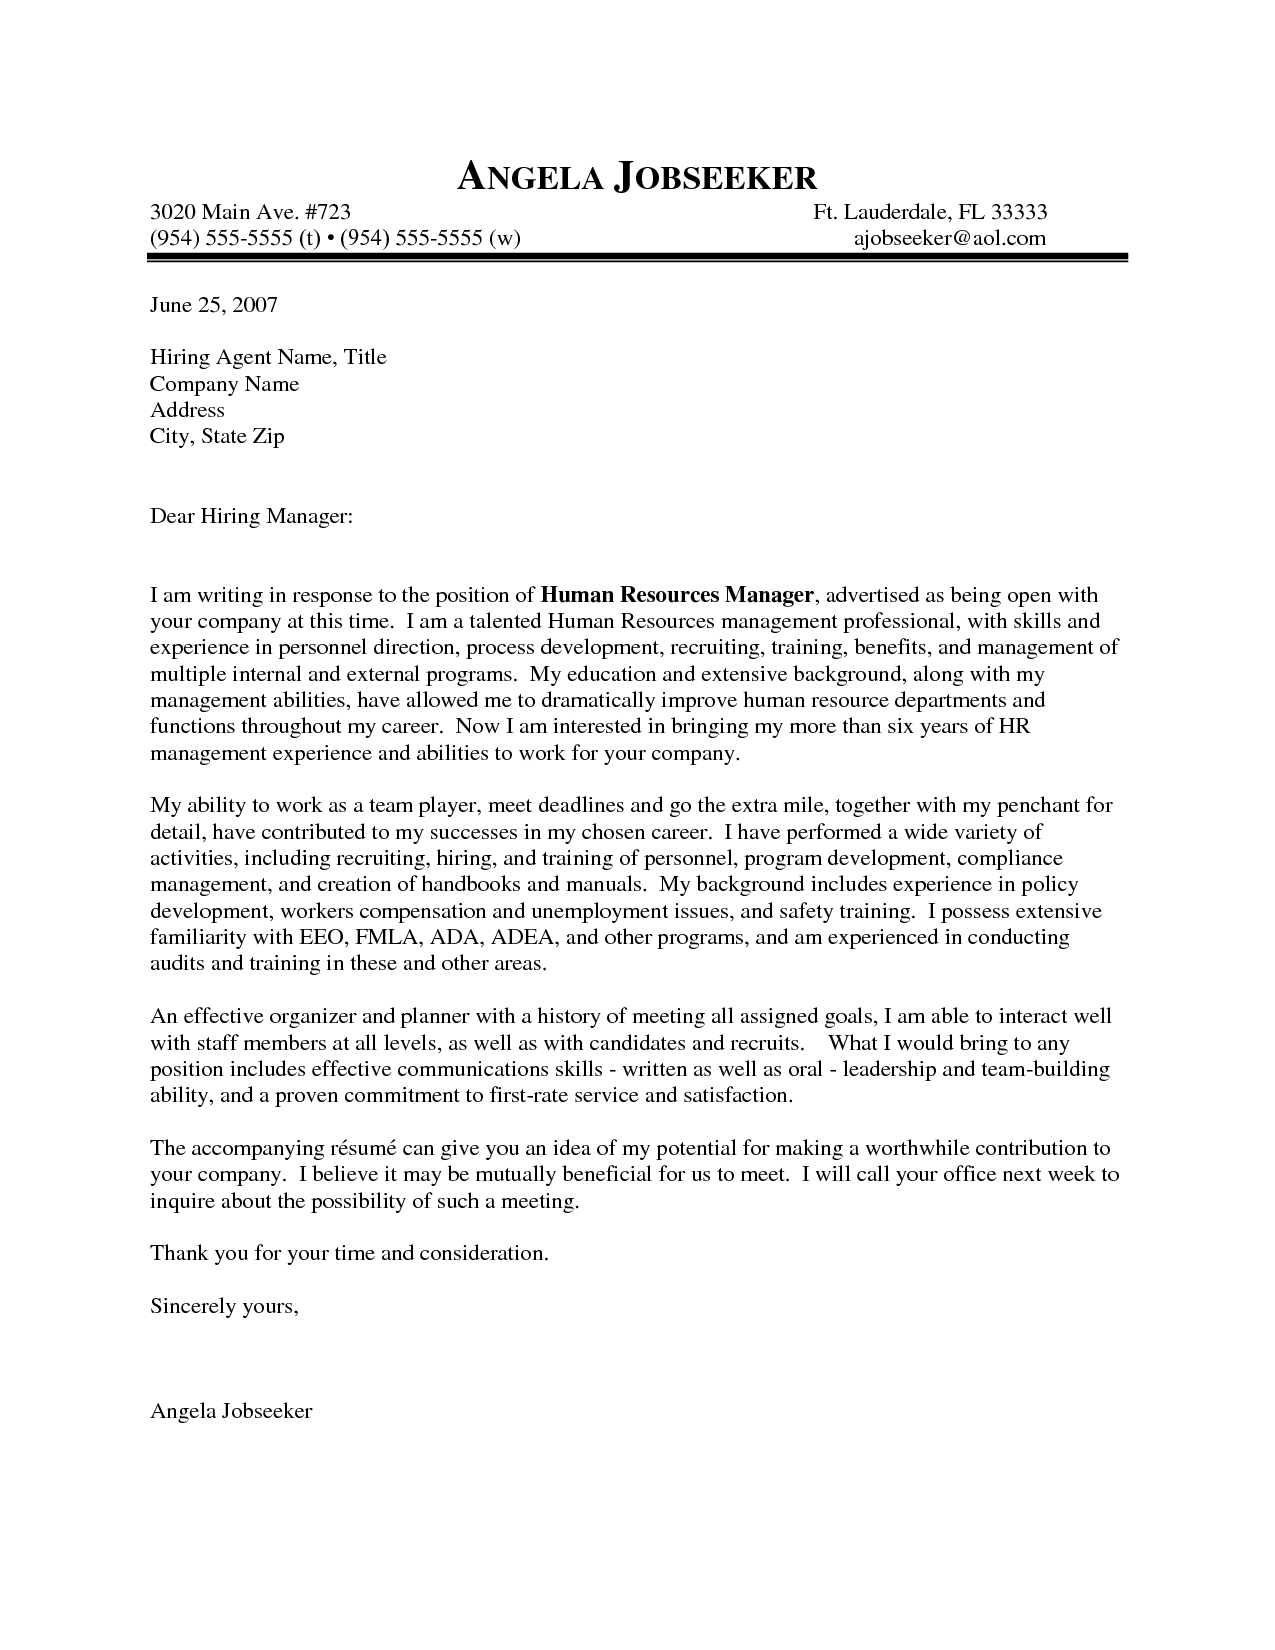 Outstanding Cover Letter Examples | HR Manager Cover Letter Example  How To Write Cover Letter Sample